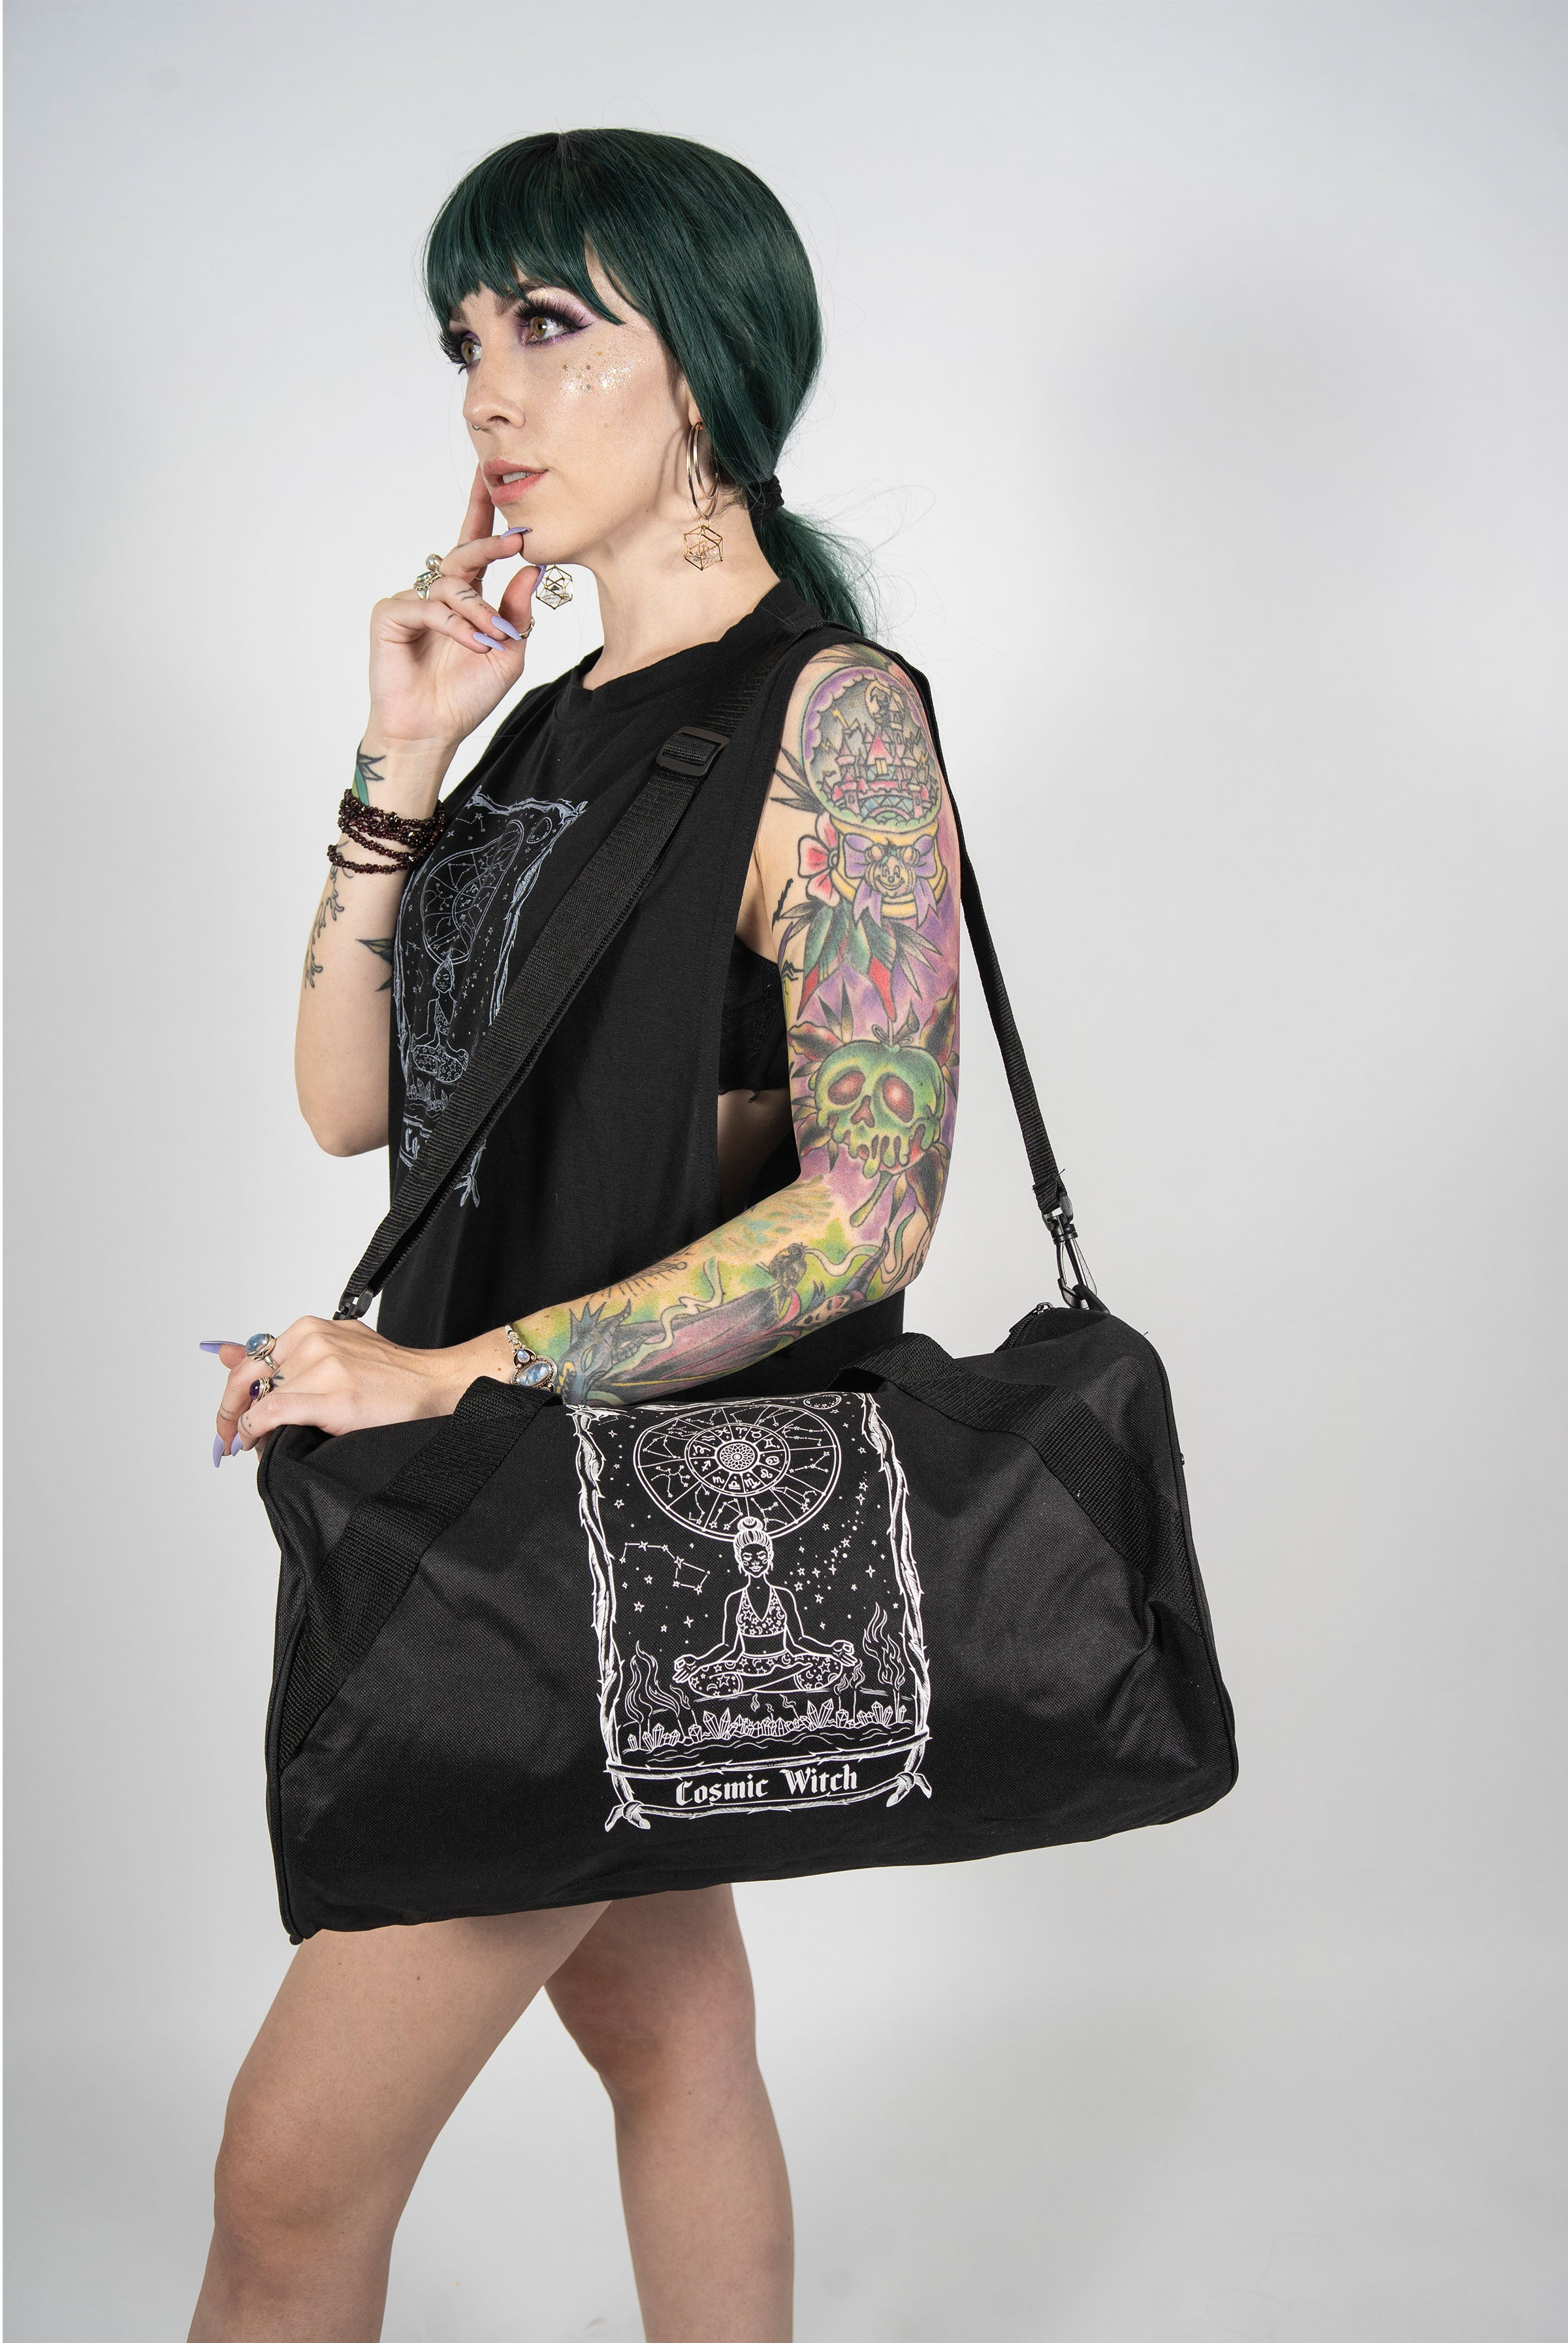 Cosmic Witch Duffle Bag